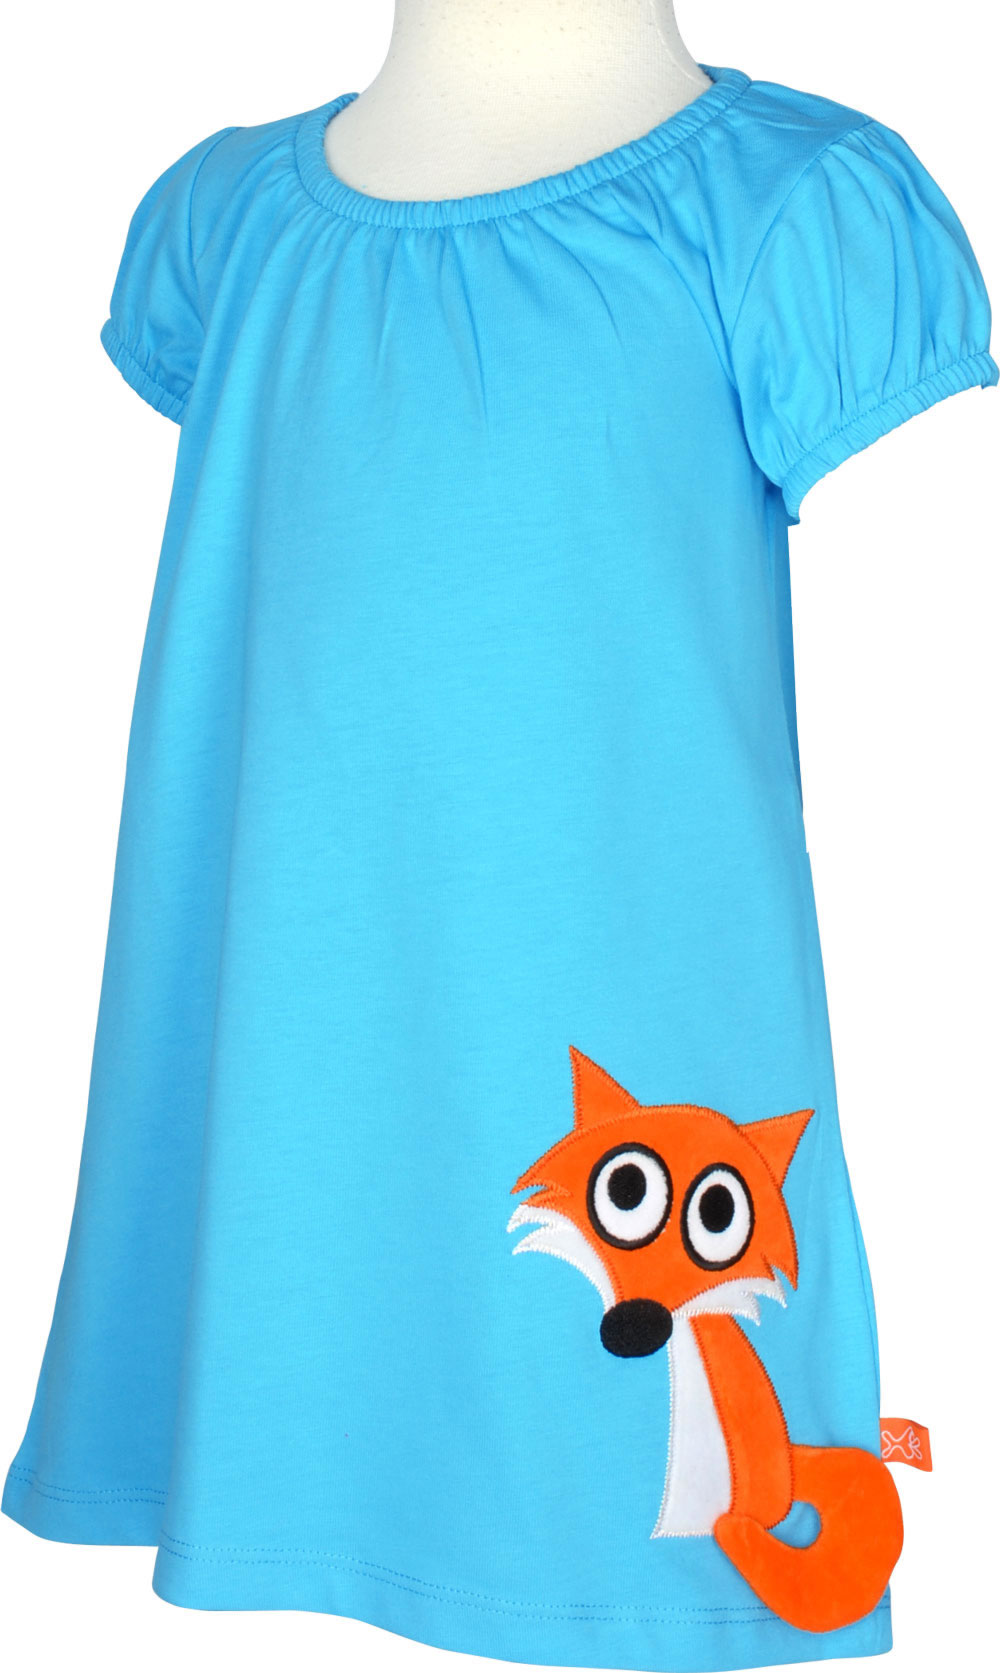 High Quality Is This Blue Short Sleeved Dress By LIPFISH The Little Orange Fox Central Eye Catcher Here Sleeves And Neckline Have A Light